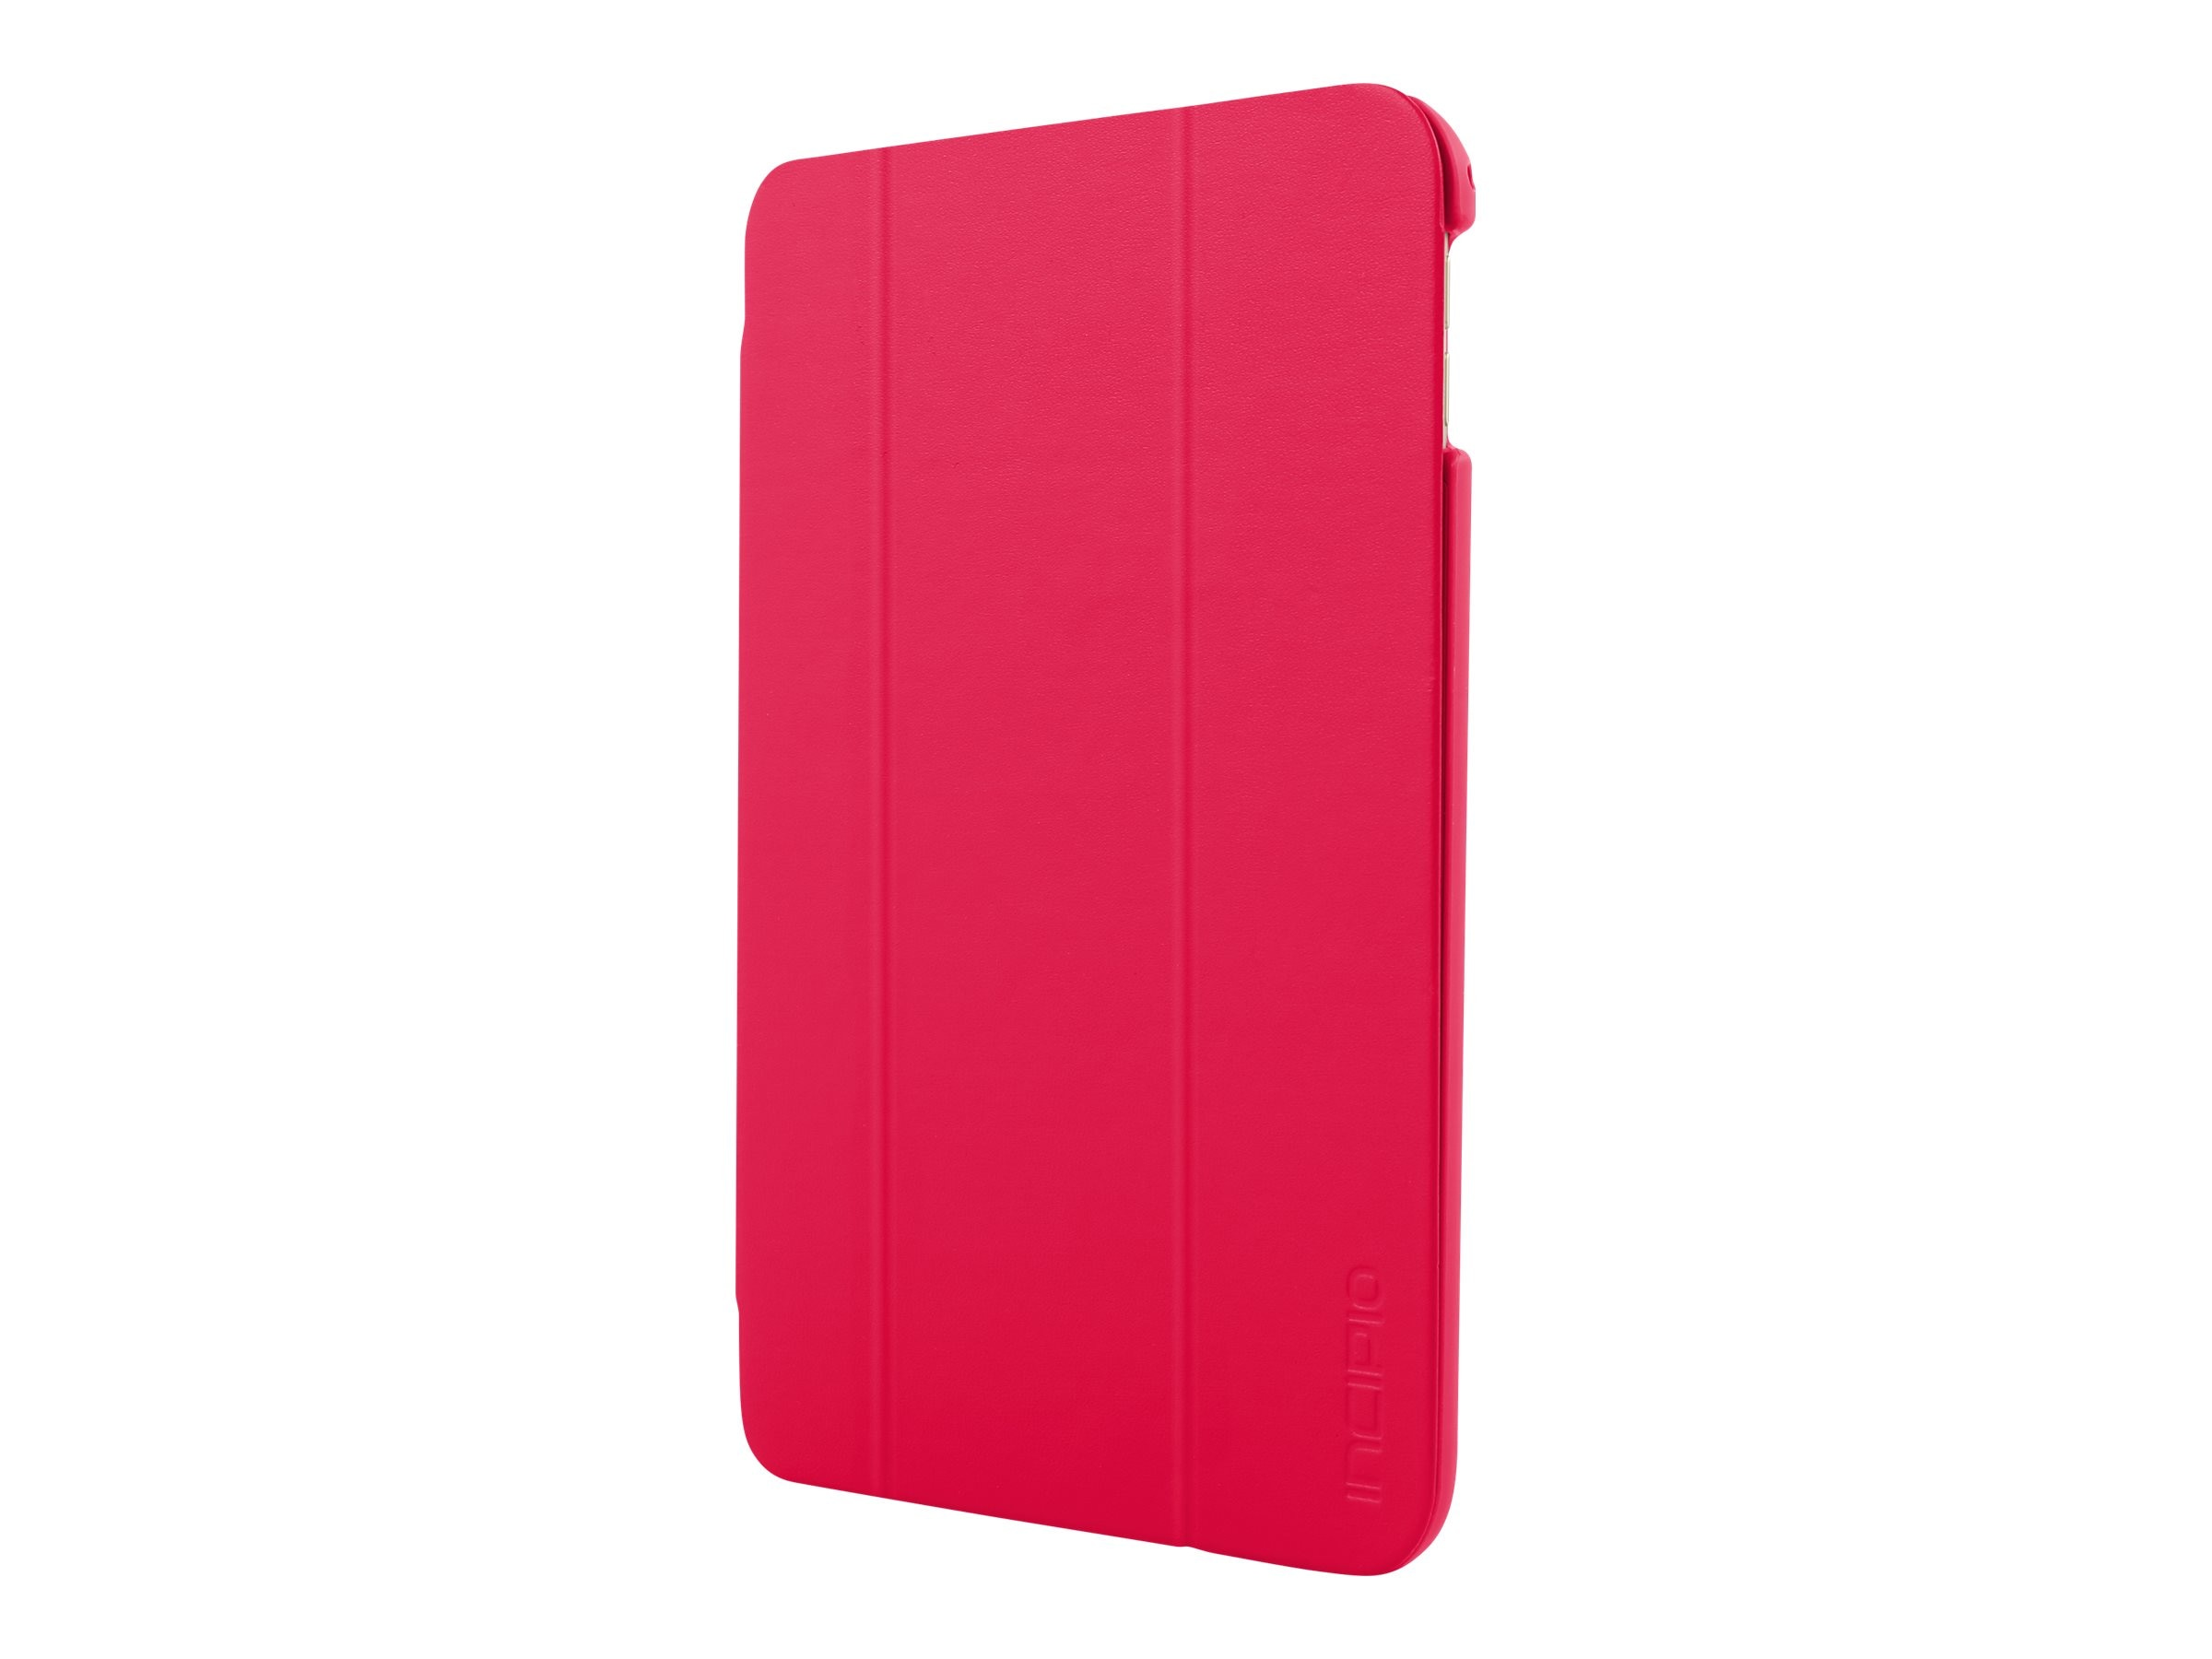 Incipio Technology IPD-280-RED Image 1